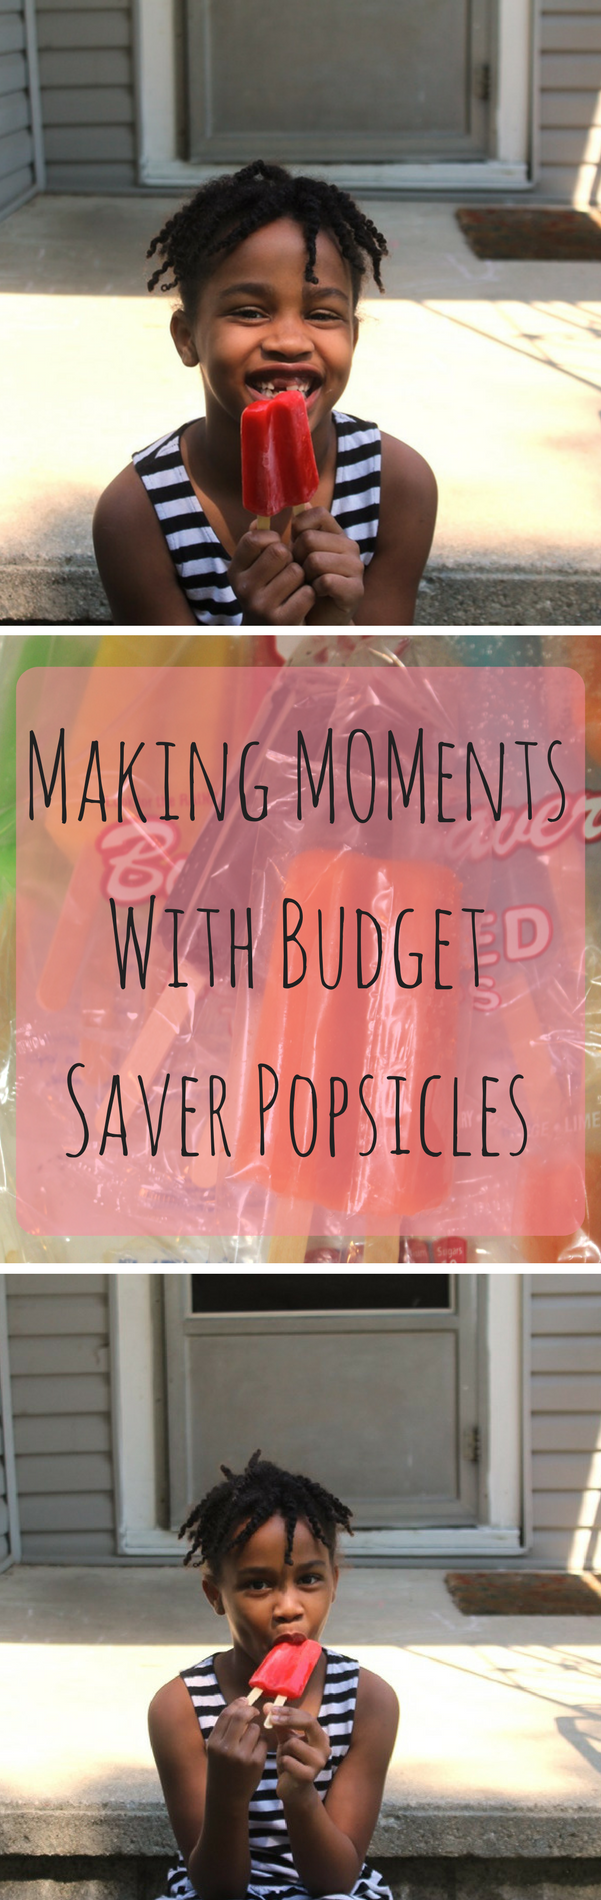 Making MOMents With Budget Saver Popsicles